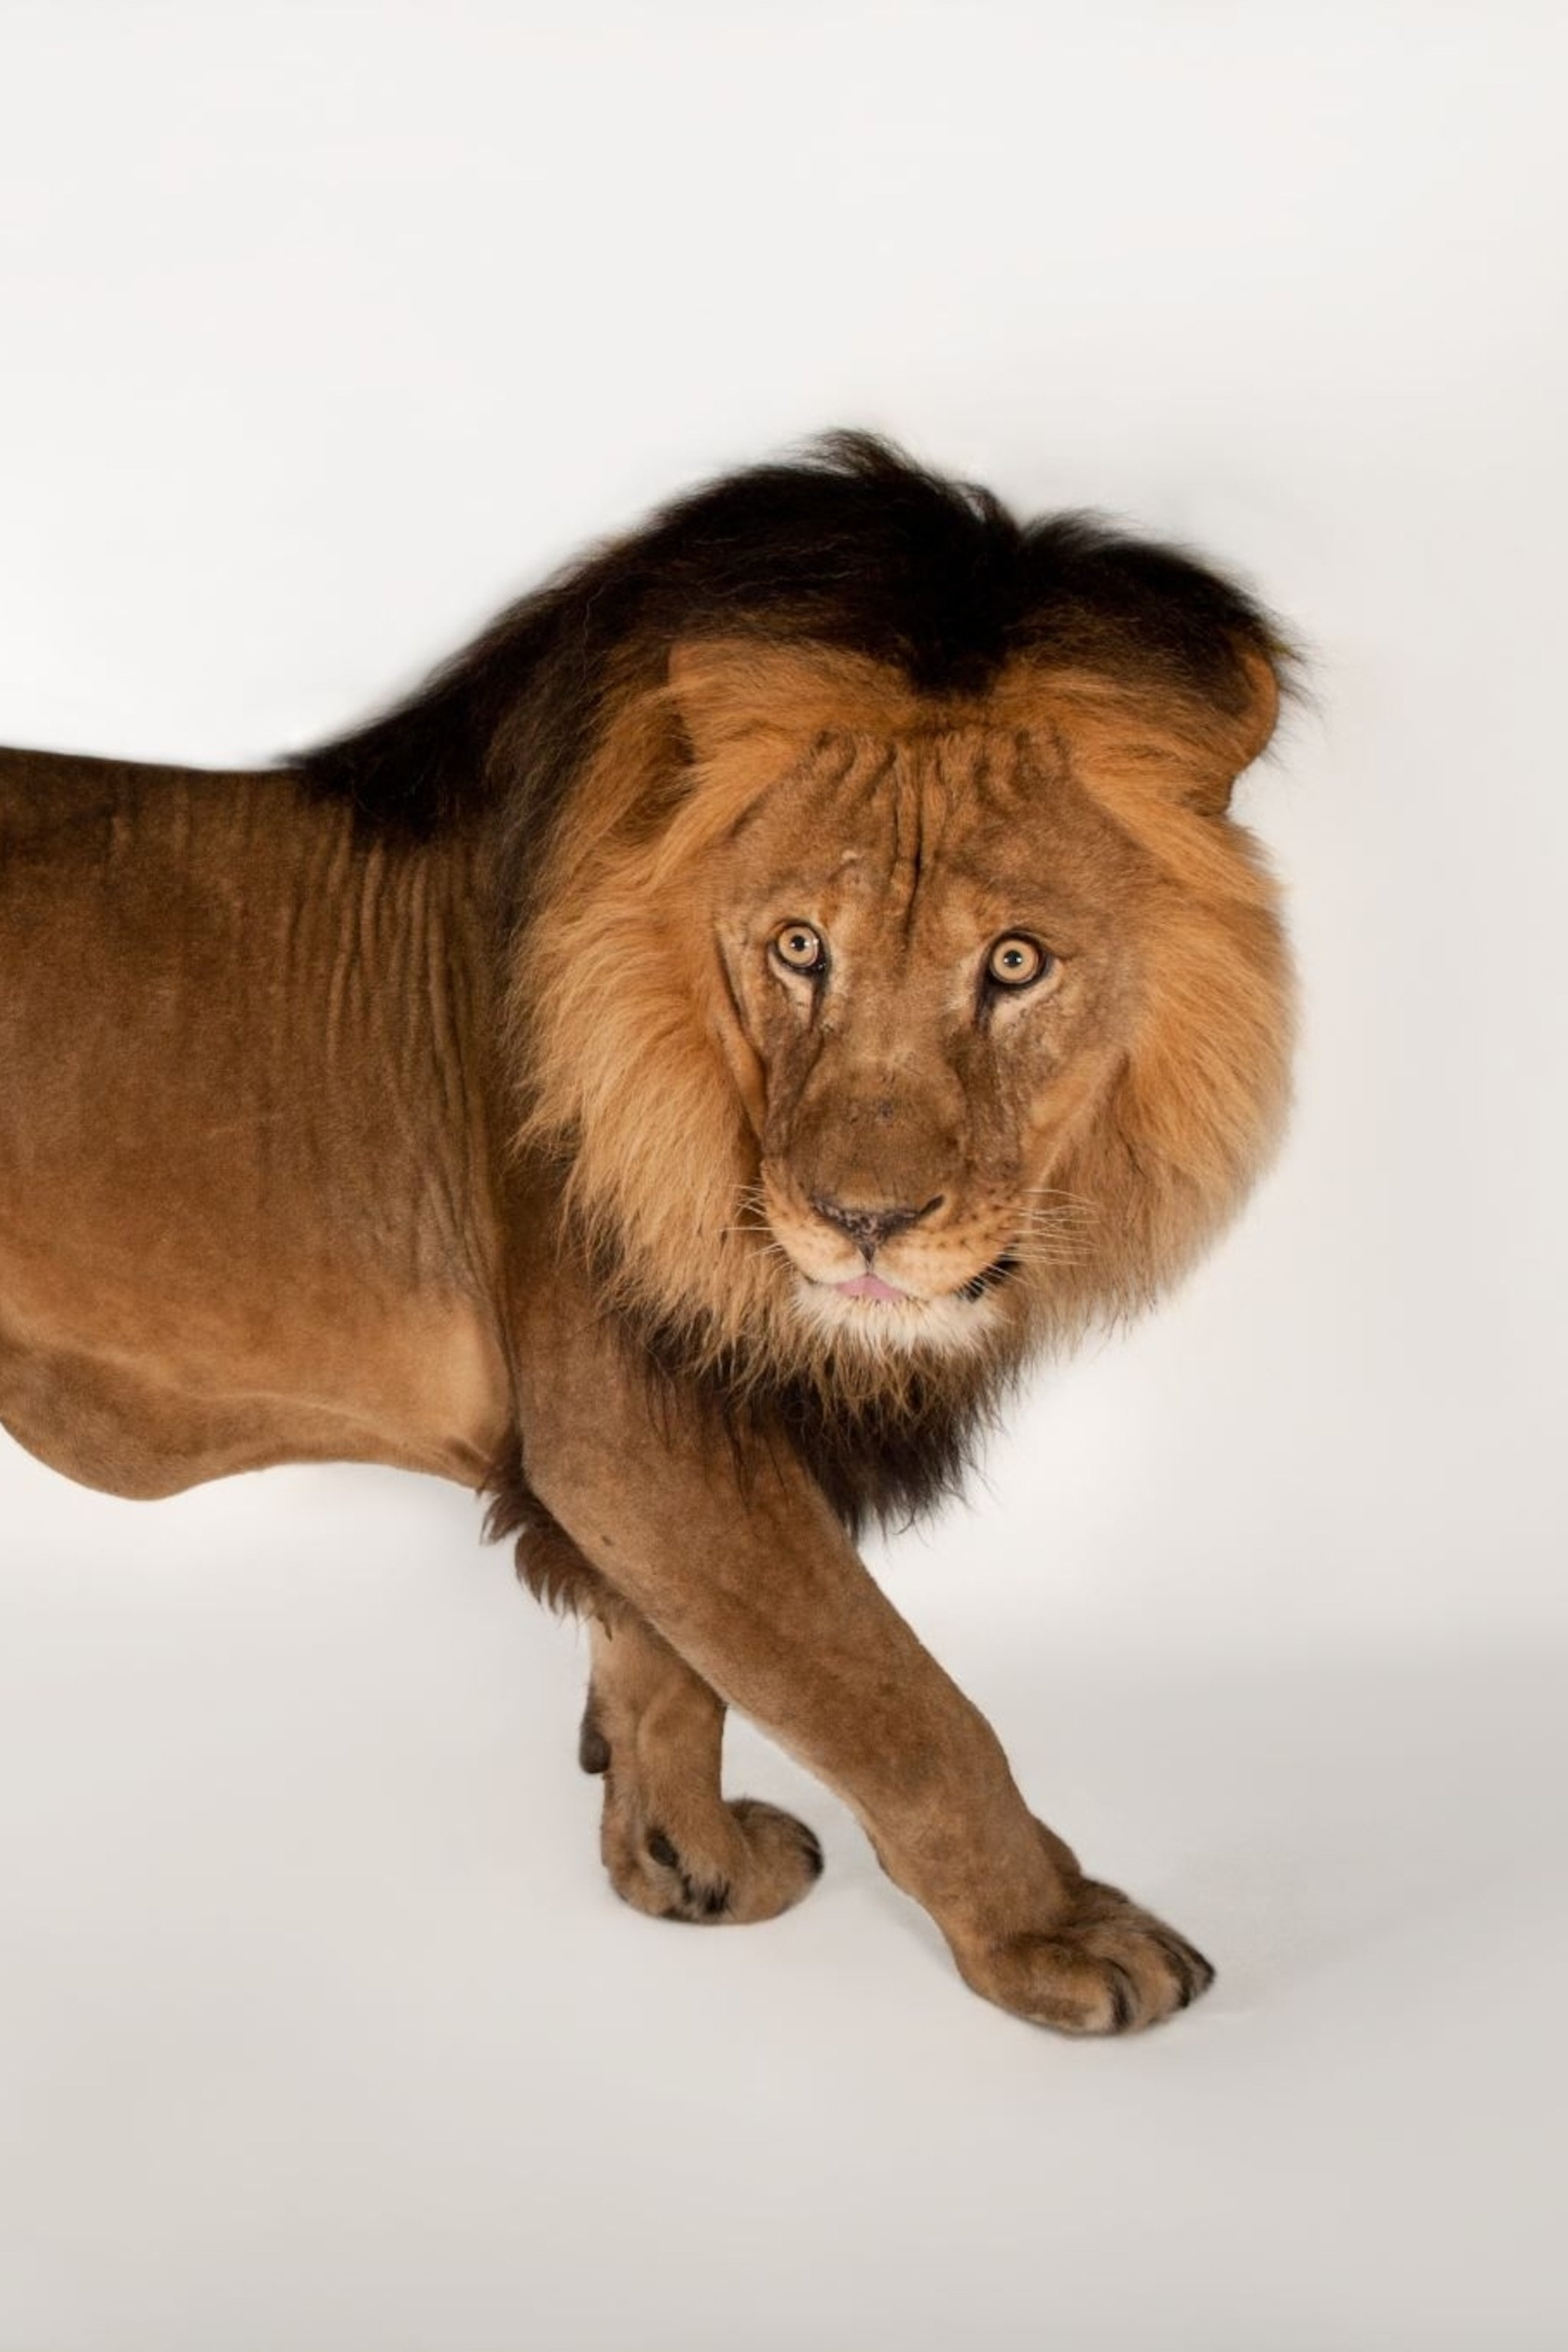 African lion, facts and photos